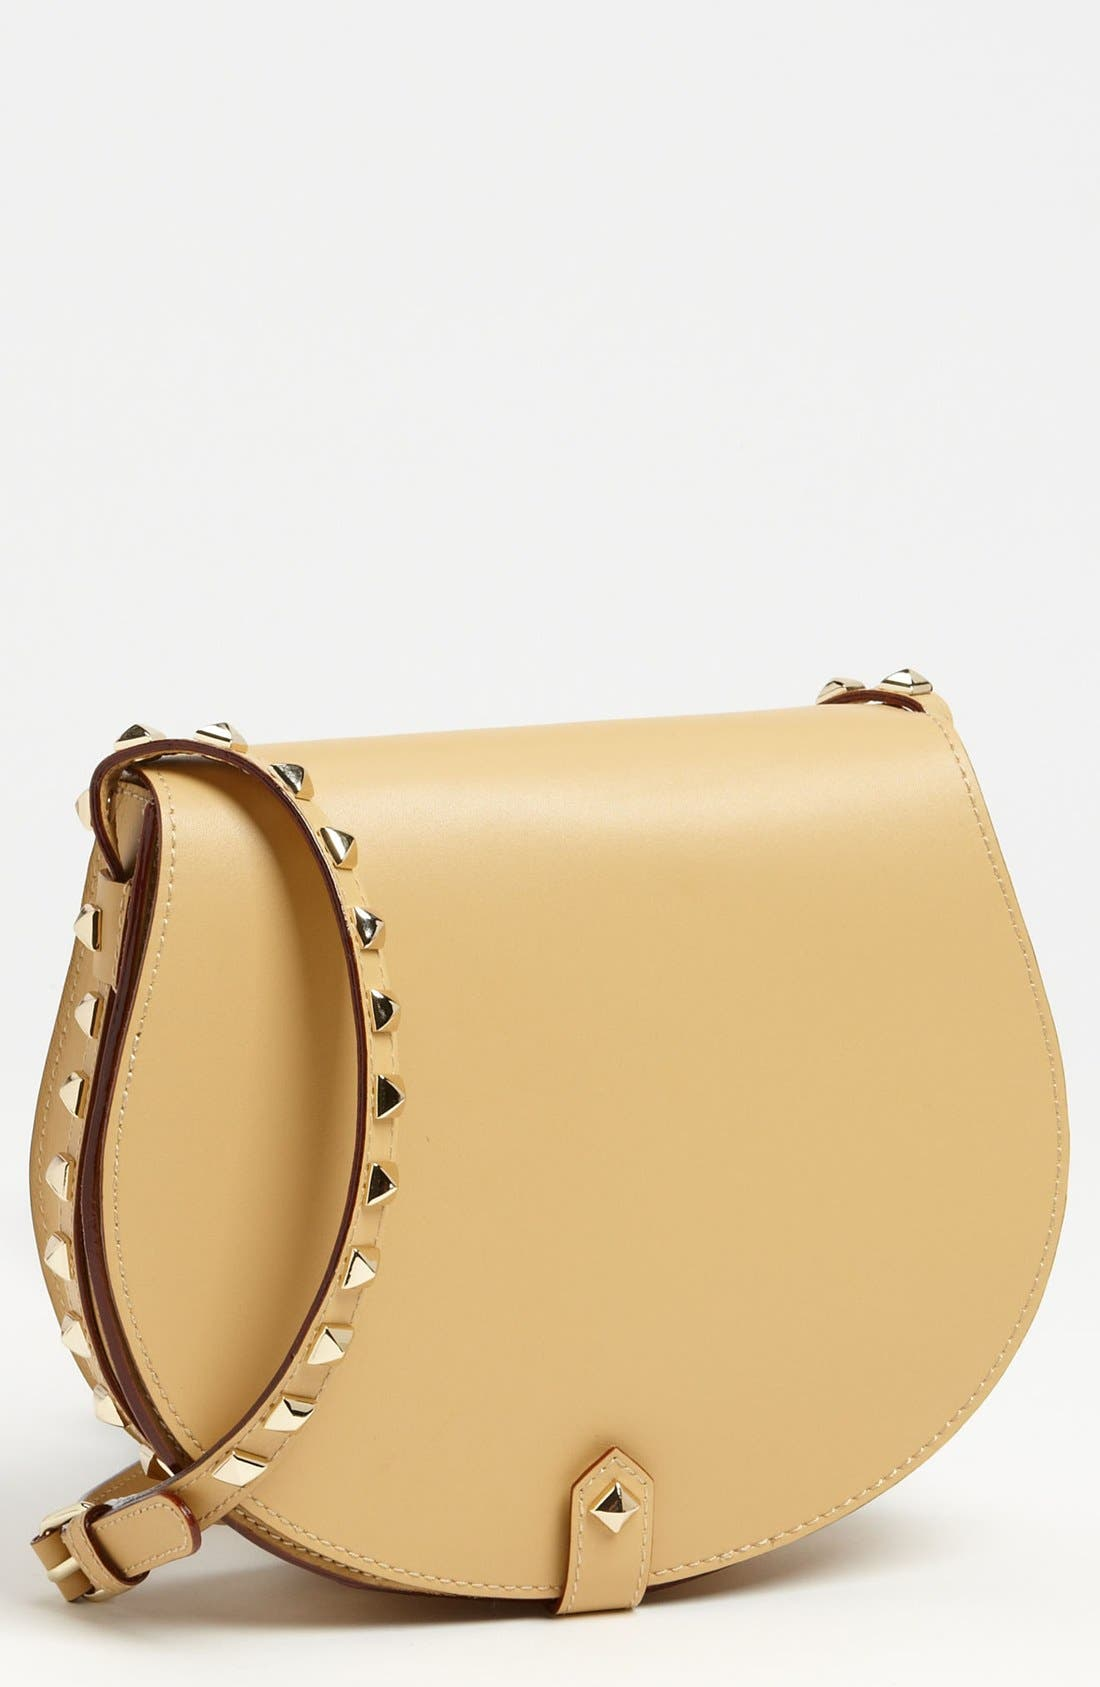 Alternate Image 1 Selected - Rebecca Minkoff 'Skylar' Studded Crossbody Bag